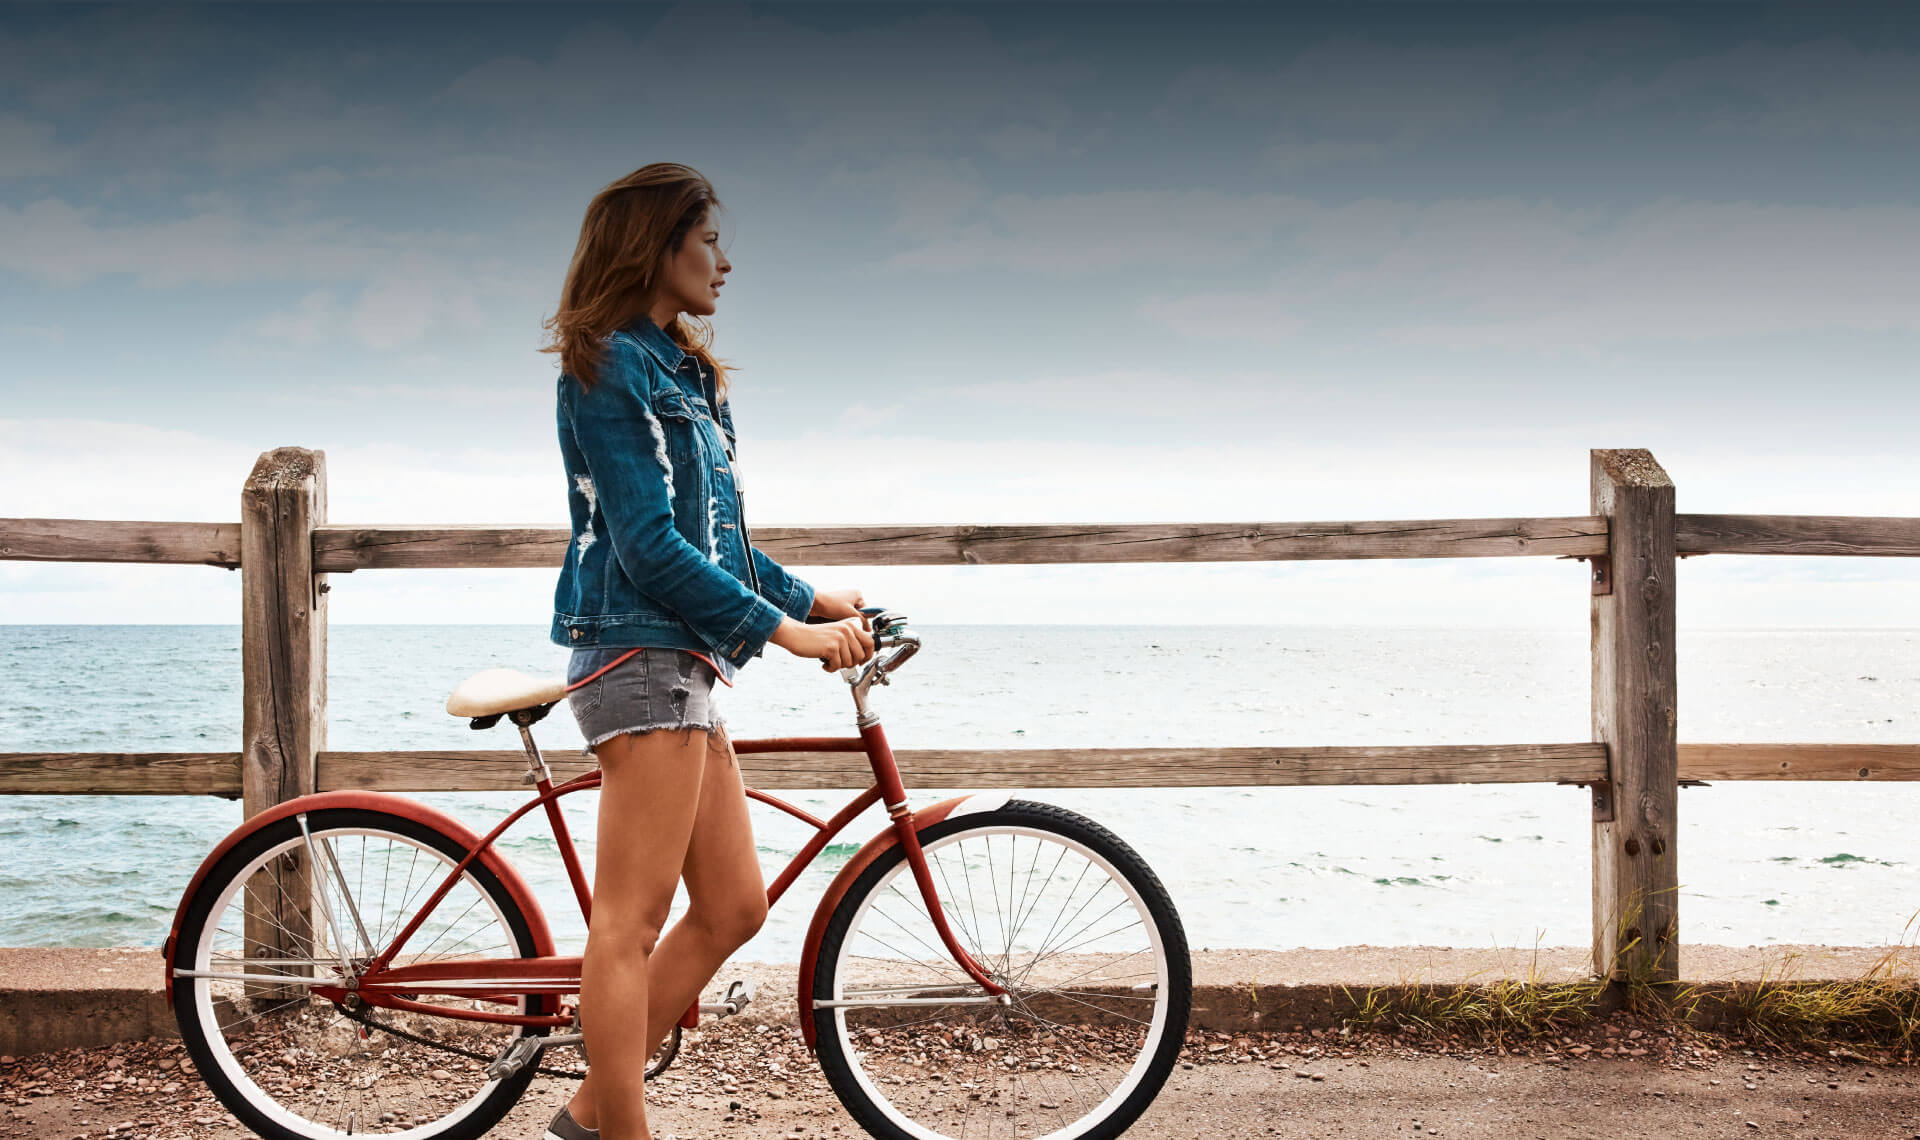 Woman standing next to a cruise bicycle looking at the ocean.